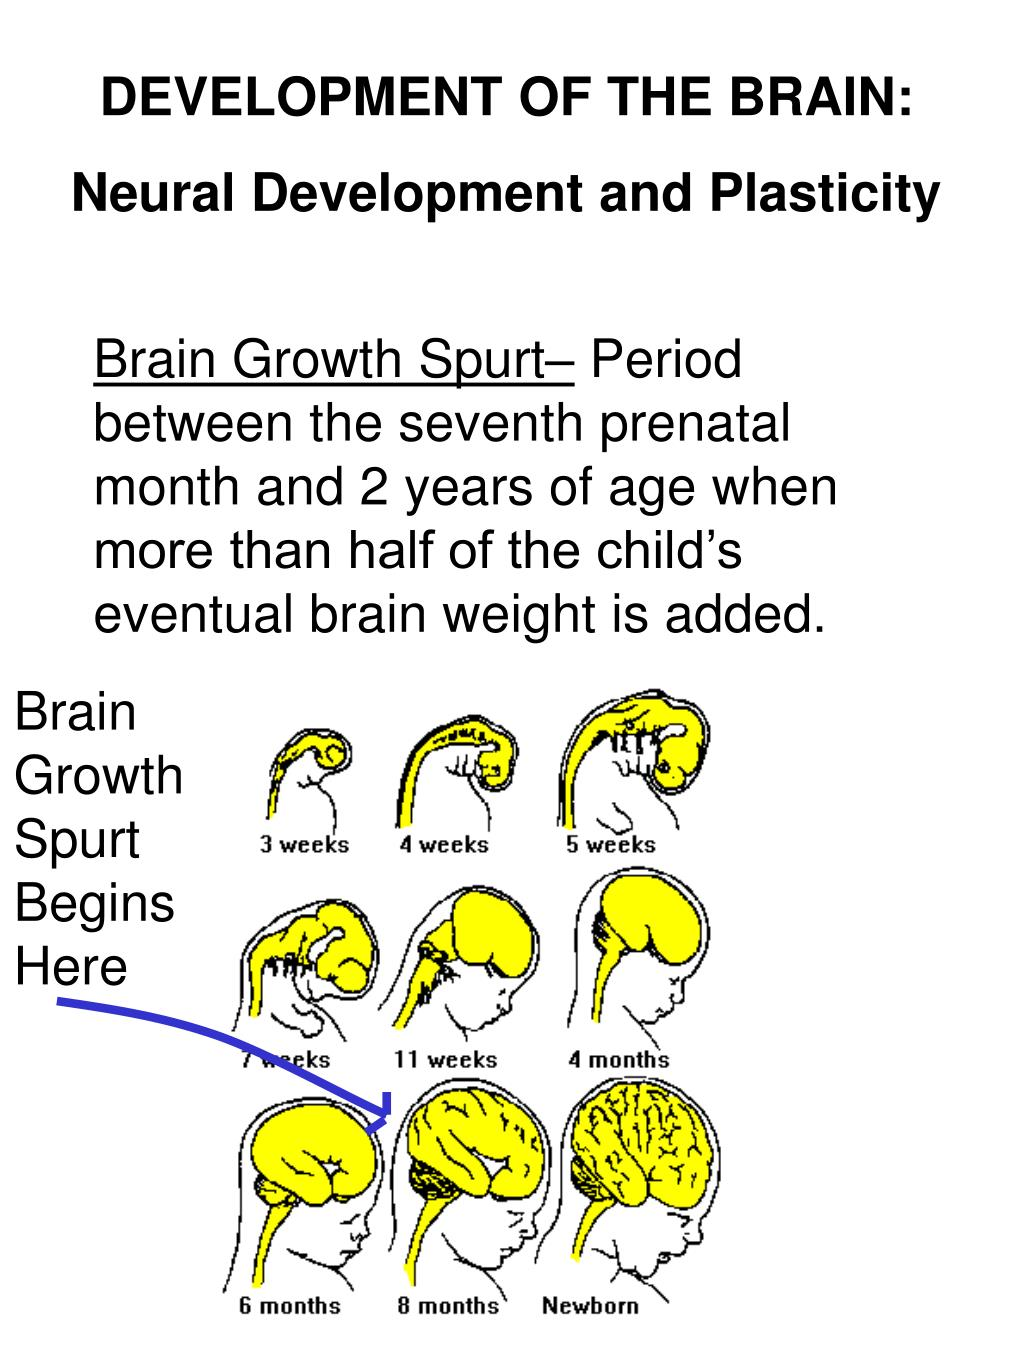 DEVELOPMENT OF THE BRAIN: